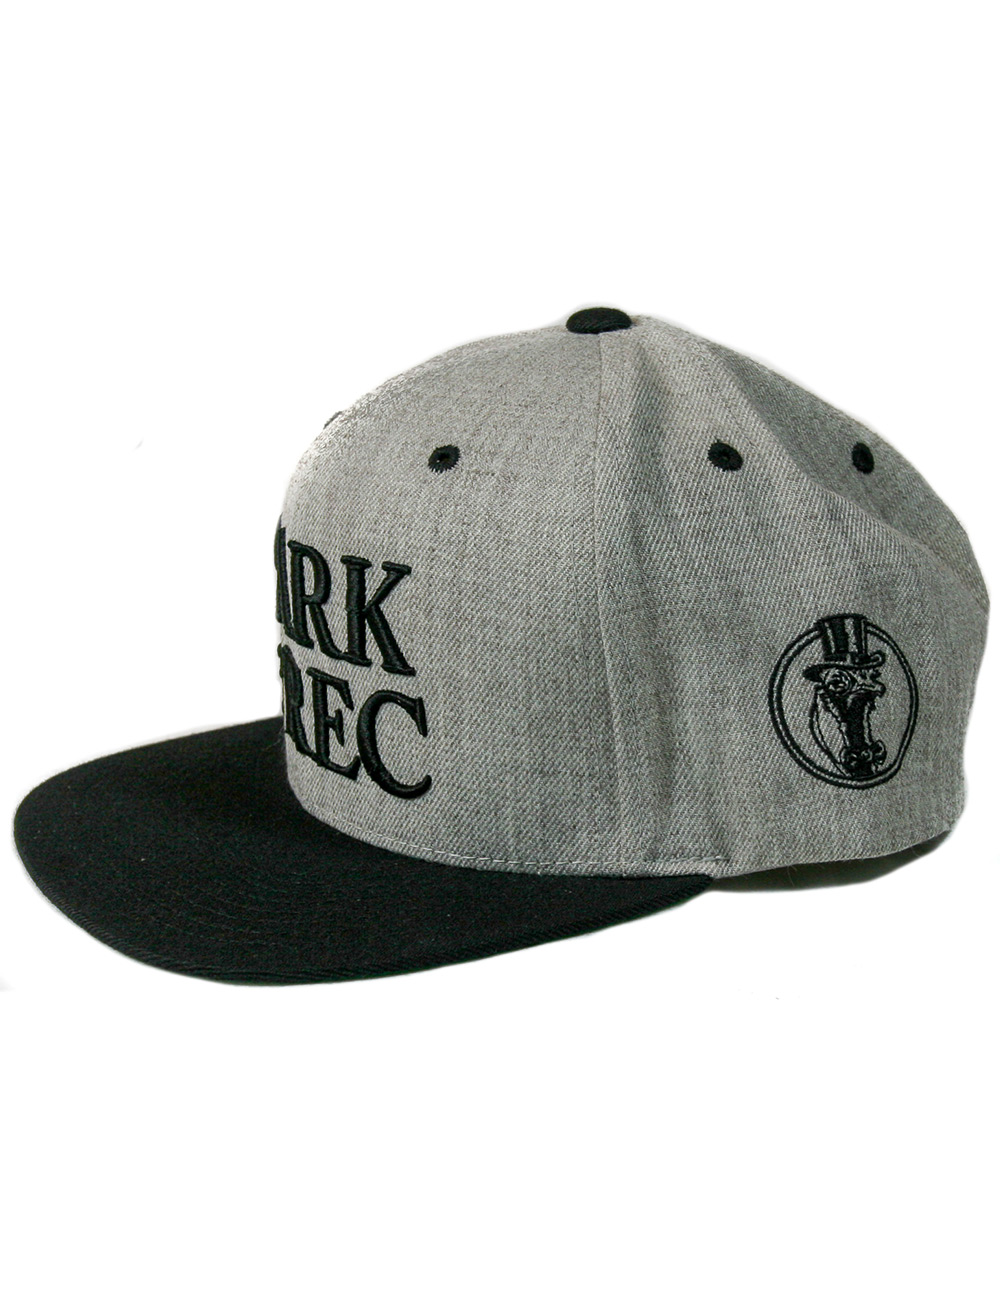 Art and Ink Park & Rec Branded Cap